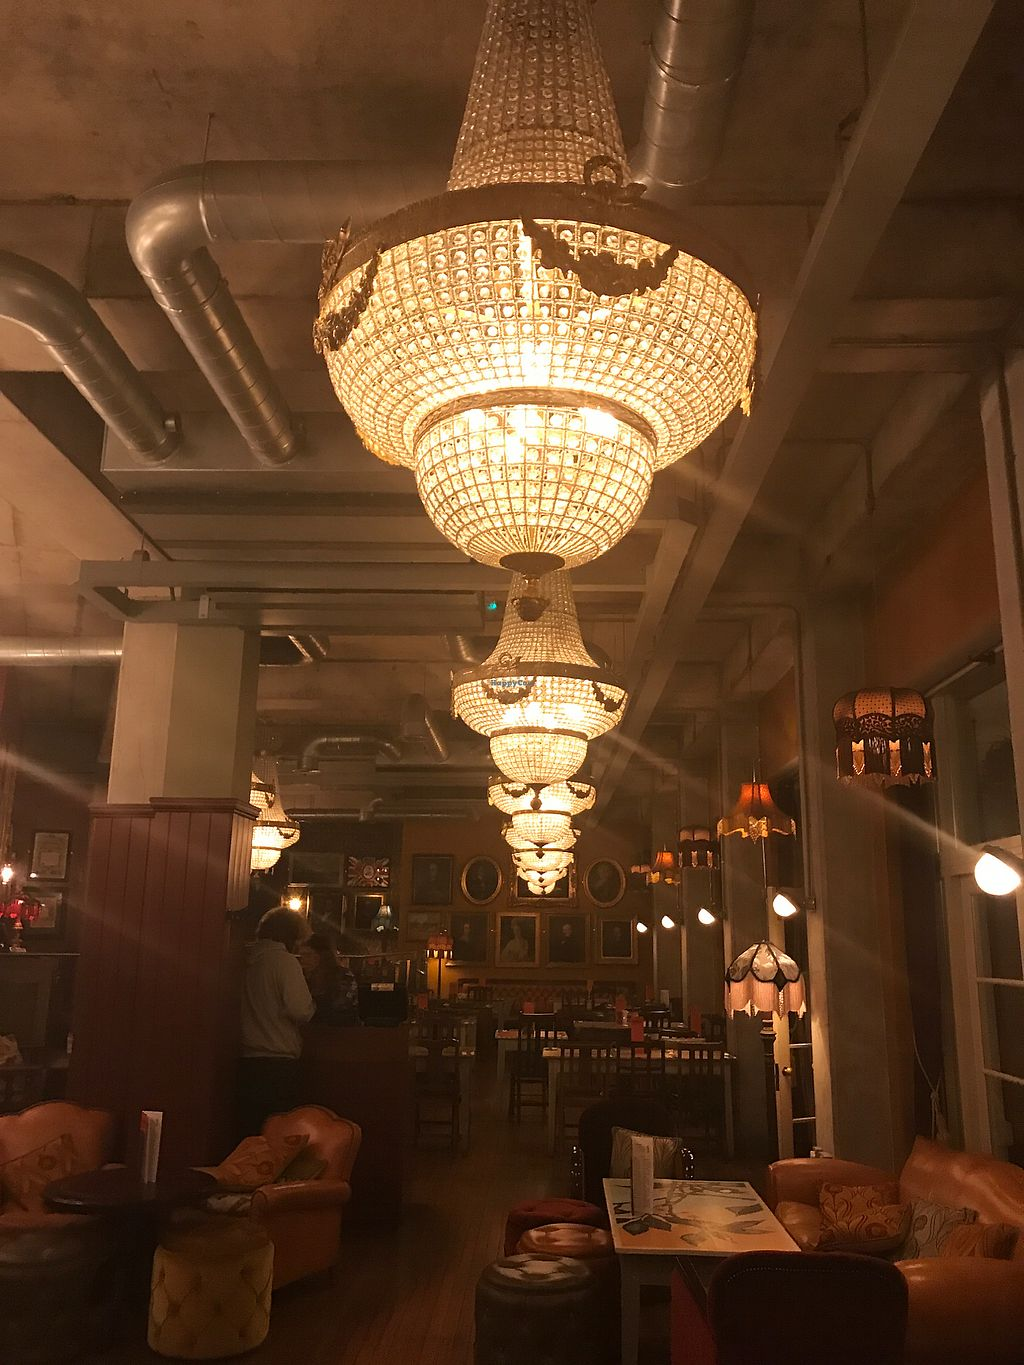 """Photo of The Cosy Club  by <a href=""""/members/profile/MelbourneMegan"""">MelbourneMegan</a> <br/>The Restaurant <br/> September 8, 2017  - <a href='/contact/abuse/image/79966/302120'>Report</a>"""